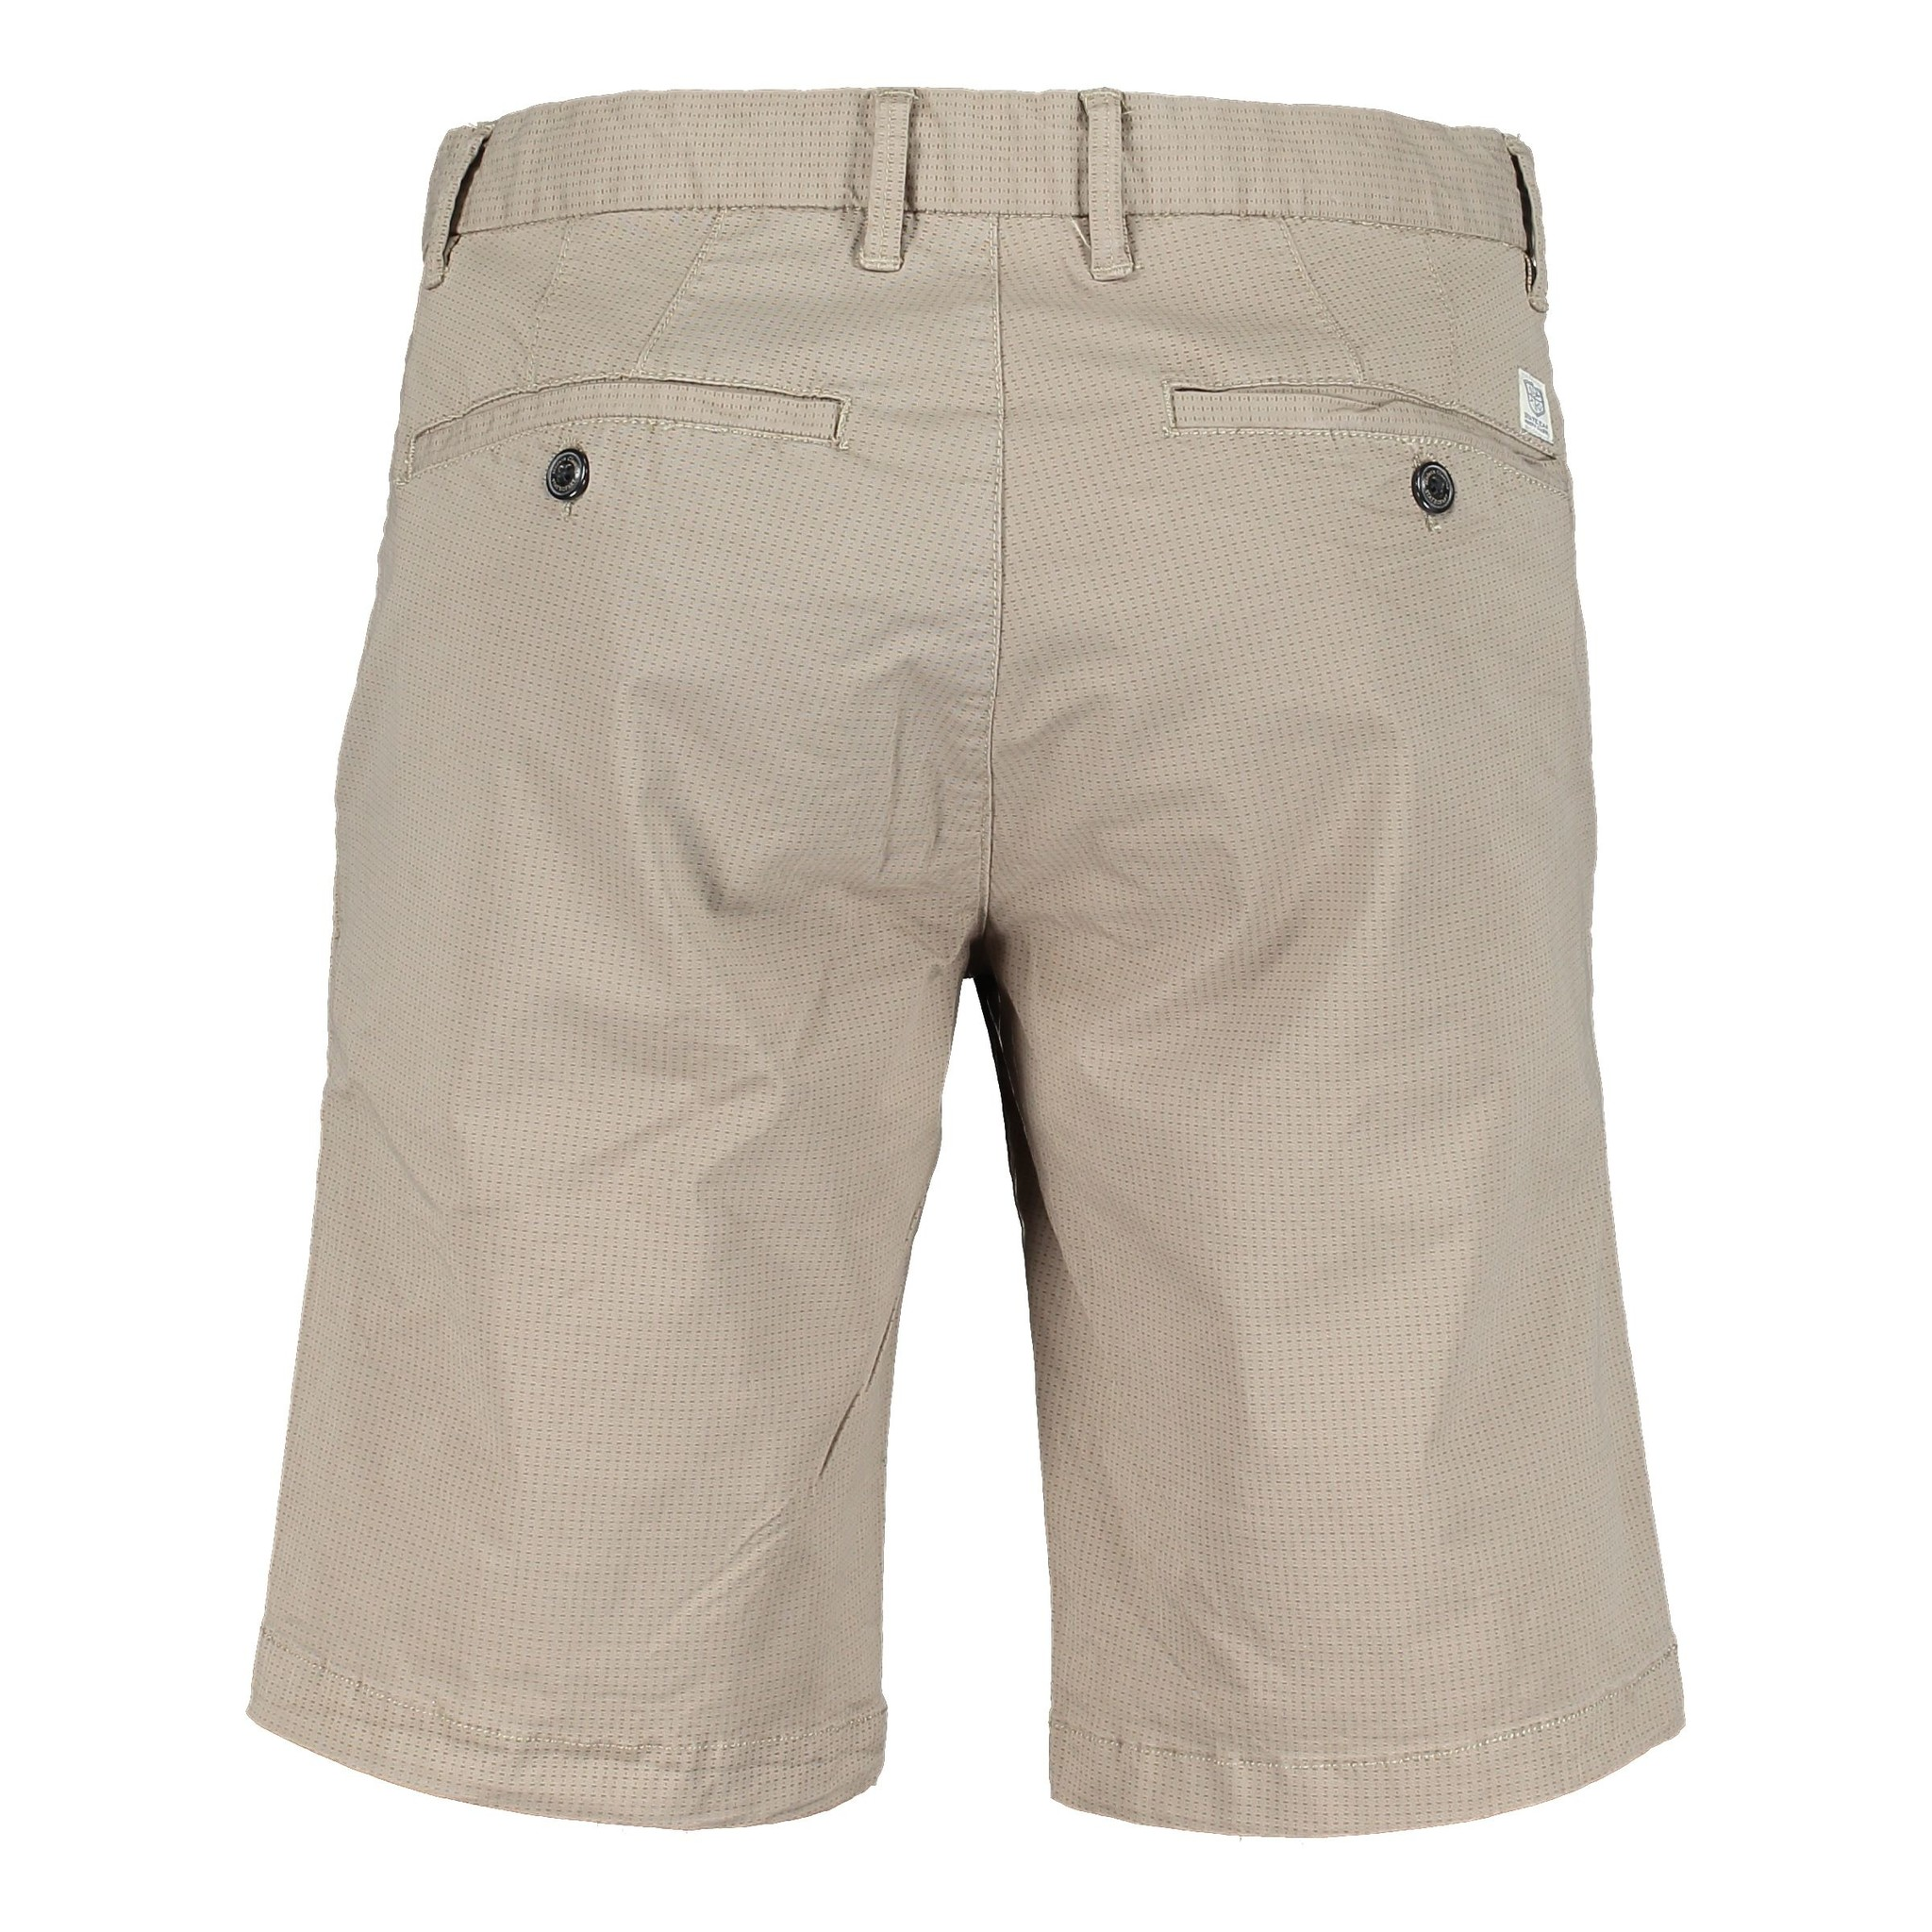 State of Art shorts State of Art 674-10769-1984